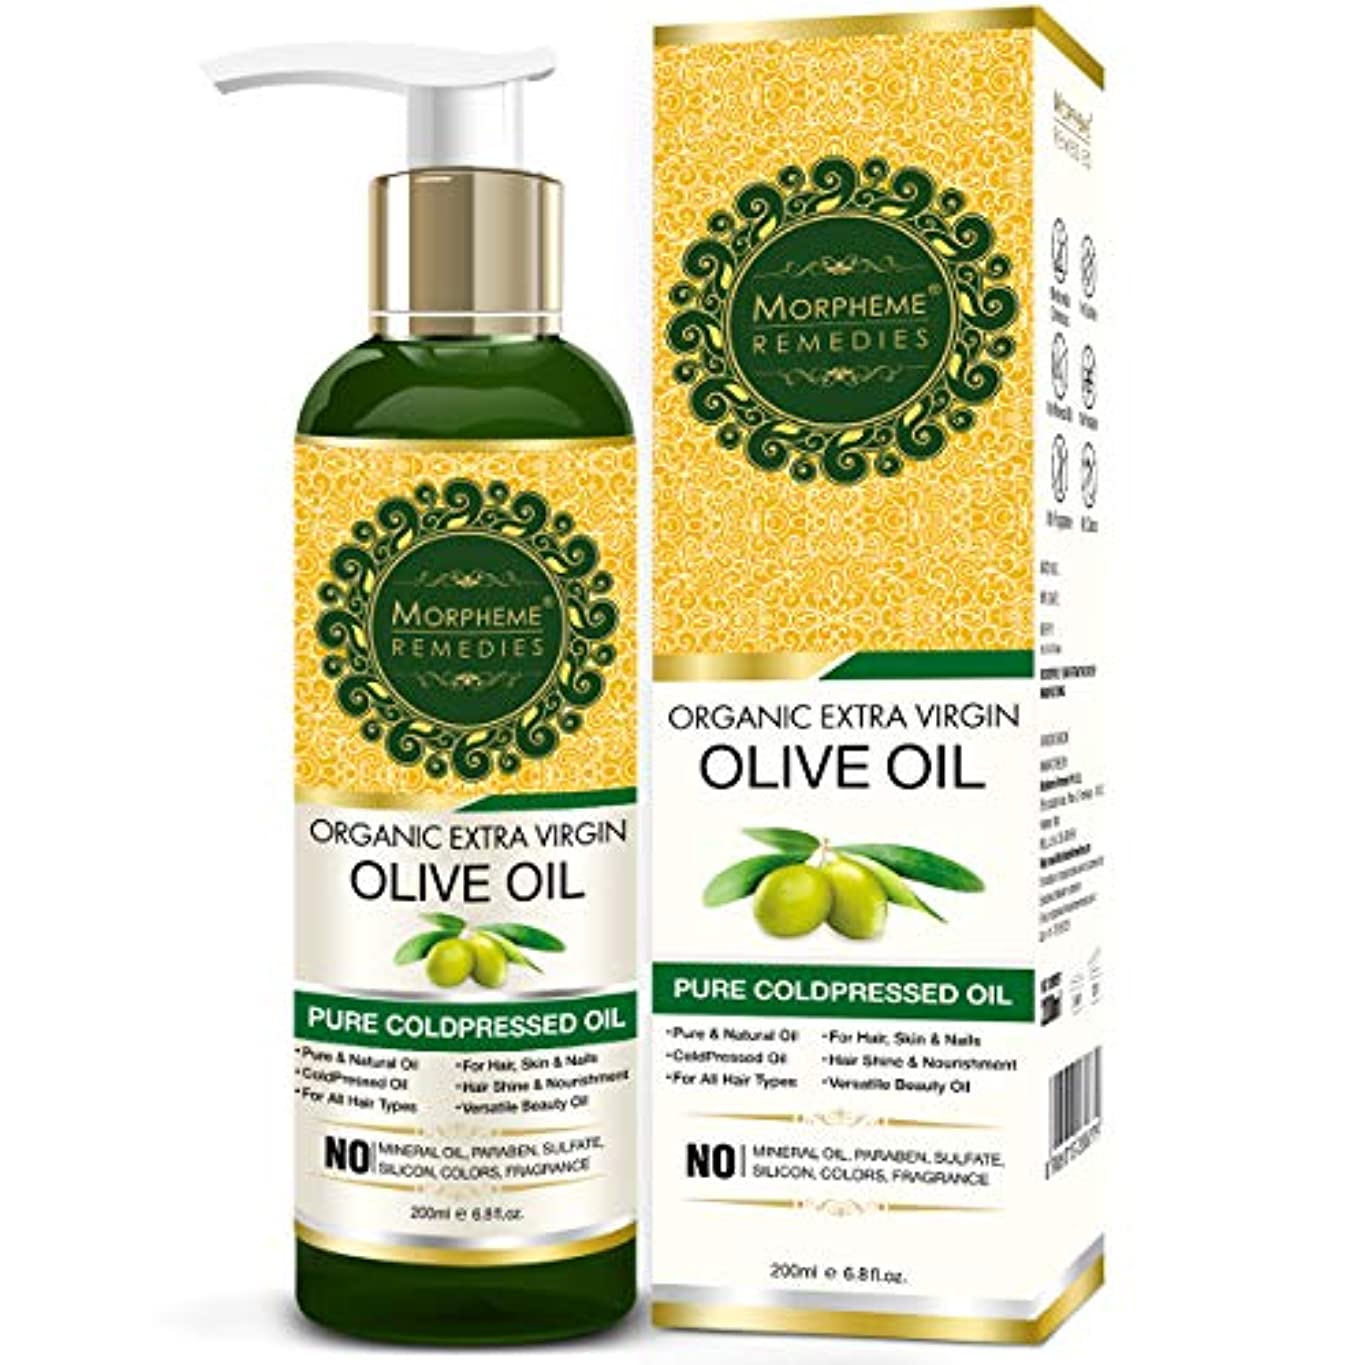 十代の若者たち葡萄所持Morpheme Remedies Organic Extra Virgin Olive Oil (Pure ColdPressed Oil) For Hair, Body, Skin Care, Massage, Eyelashes...